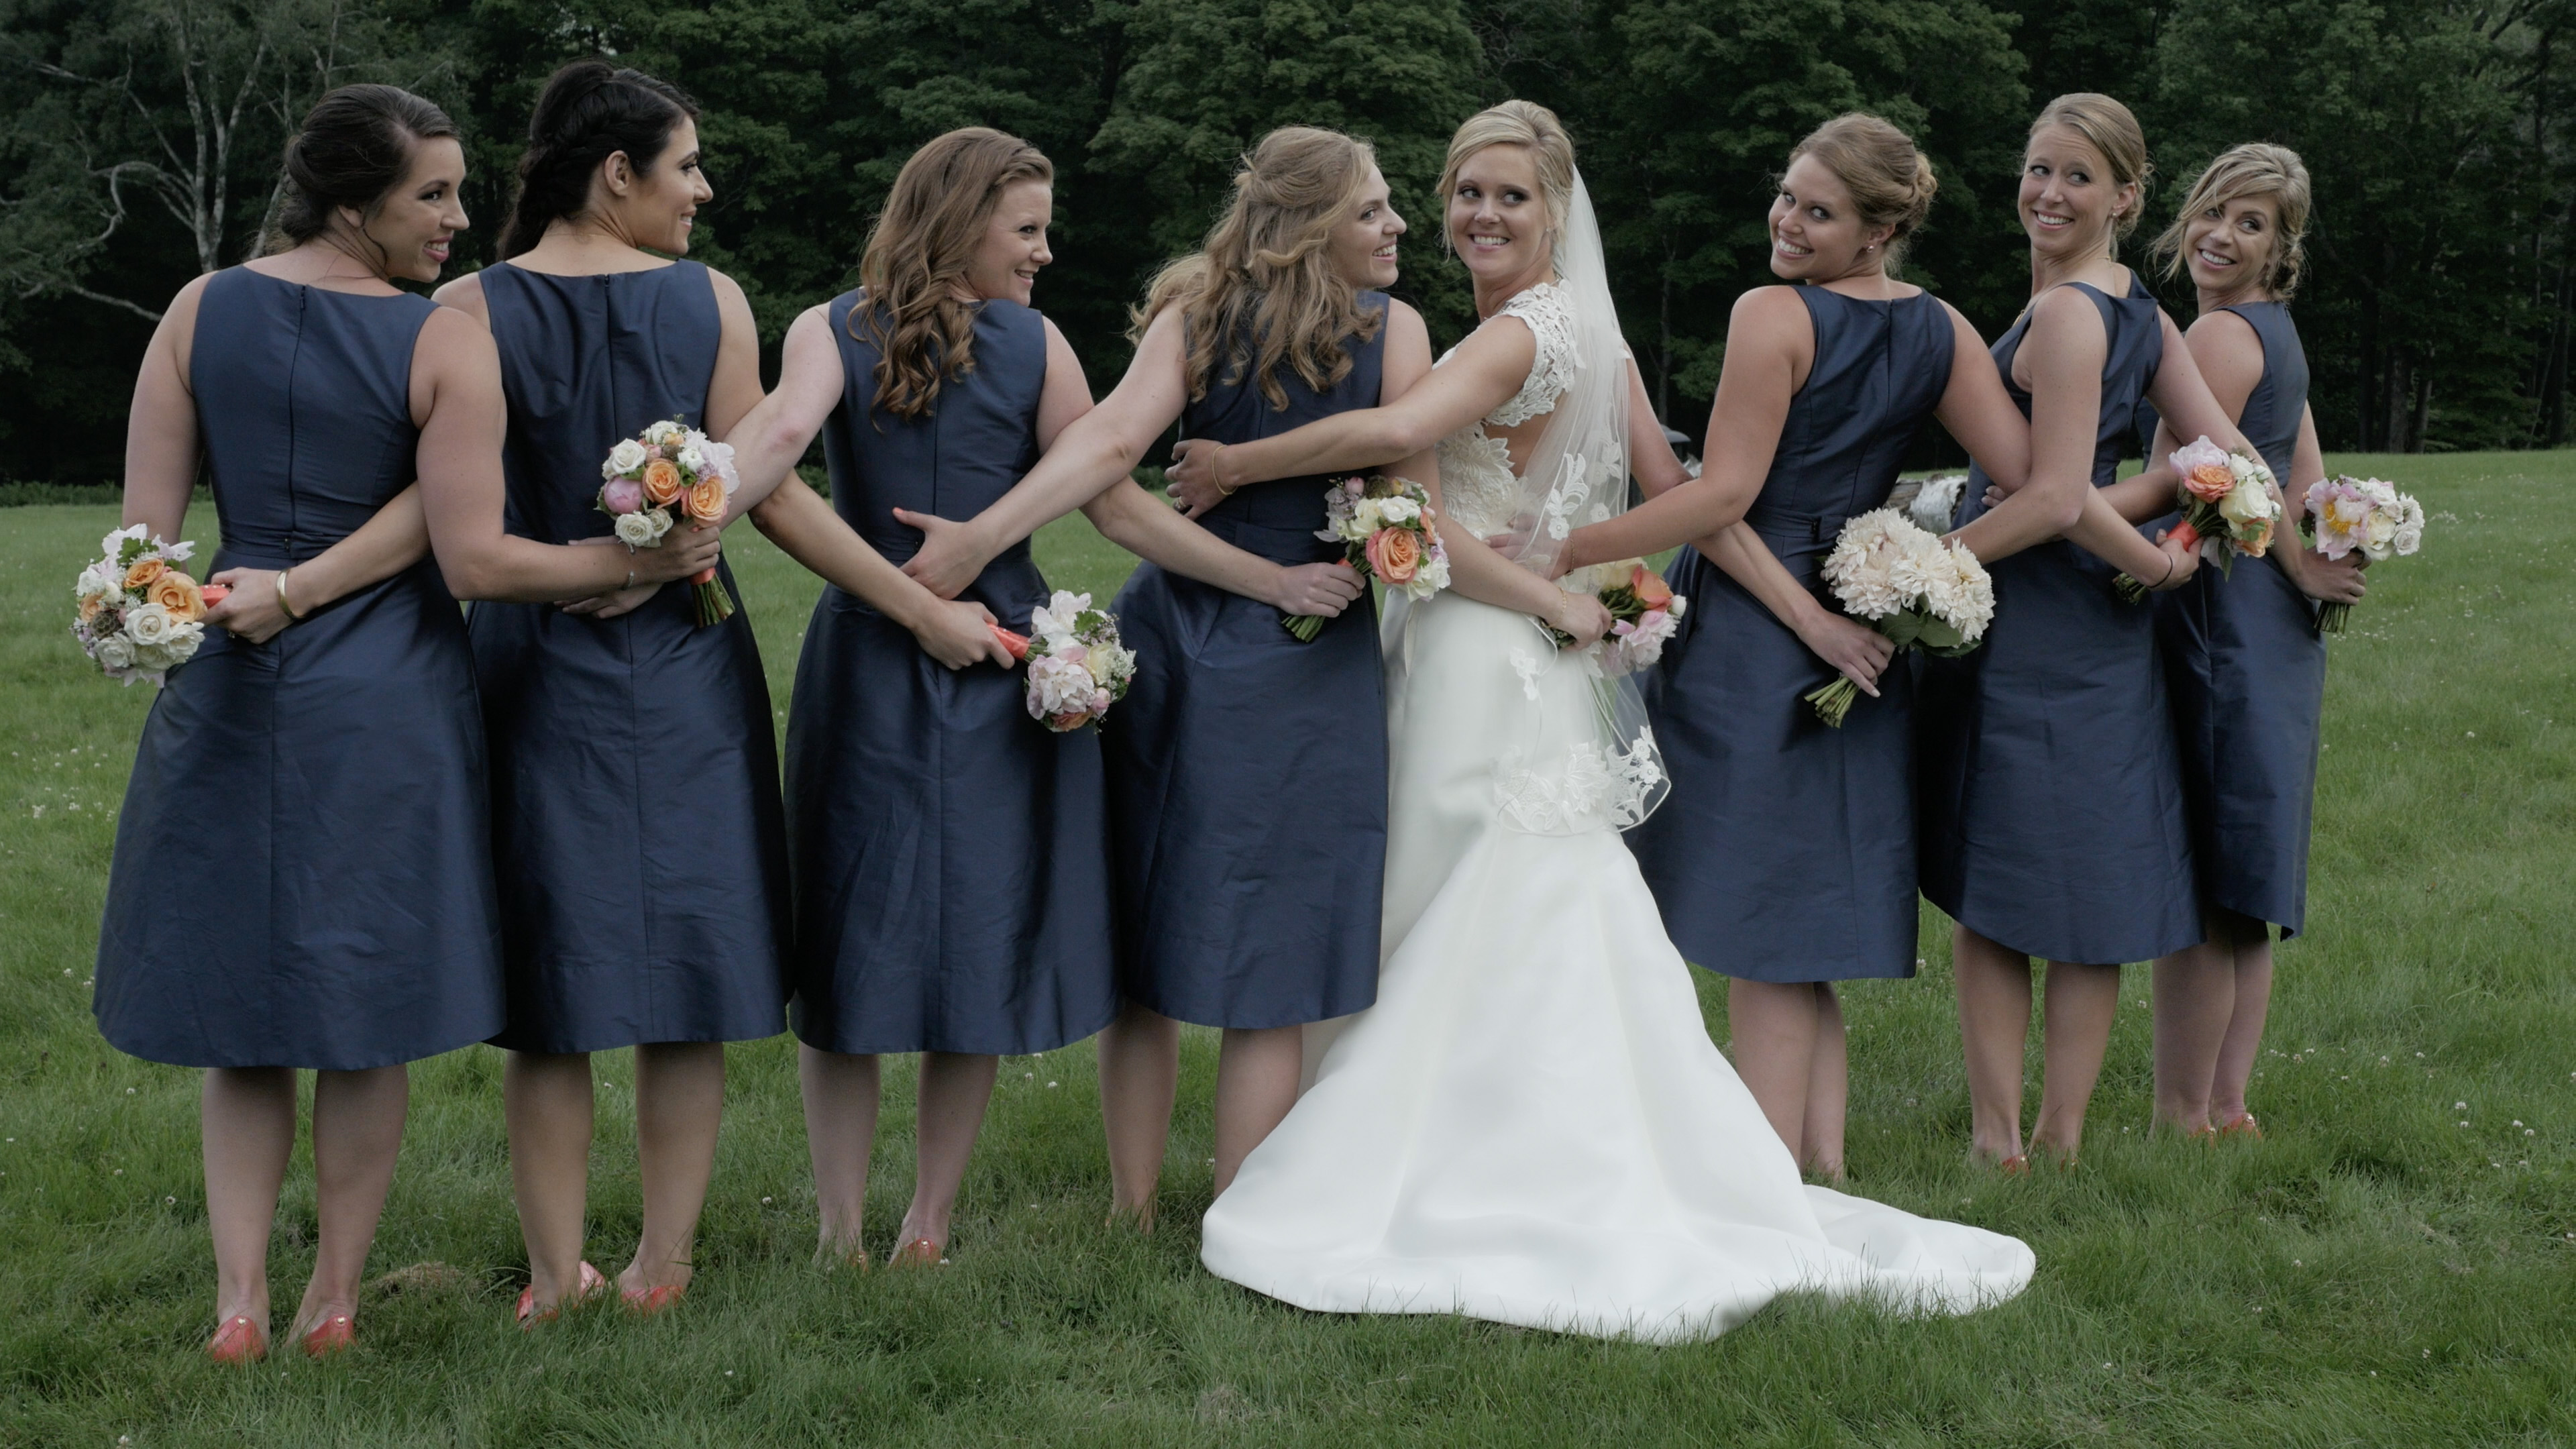 Bride And Bridesmaids In Formals Vermont Wedding And Landscape